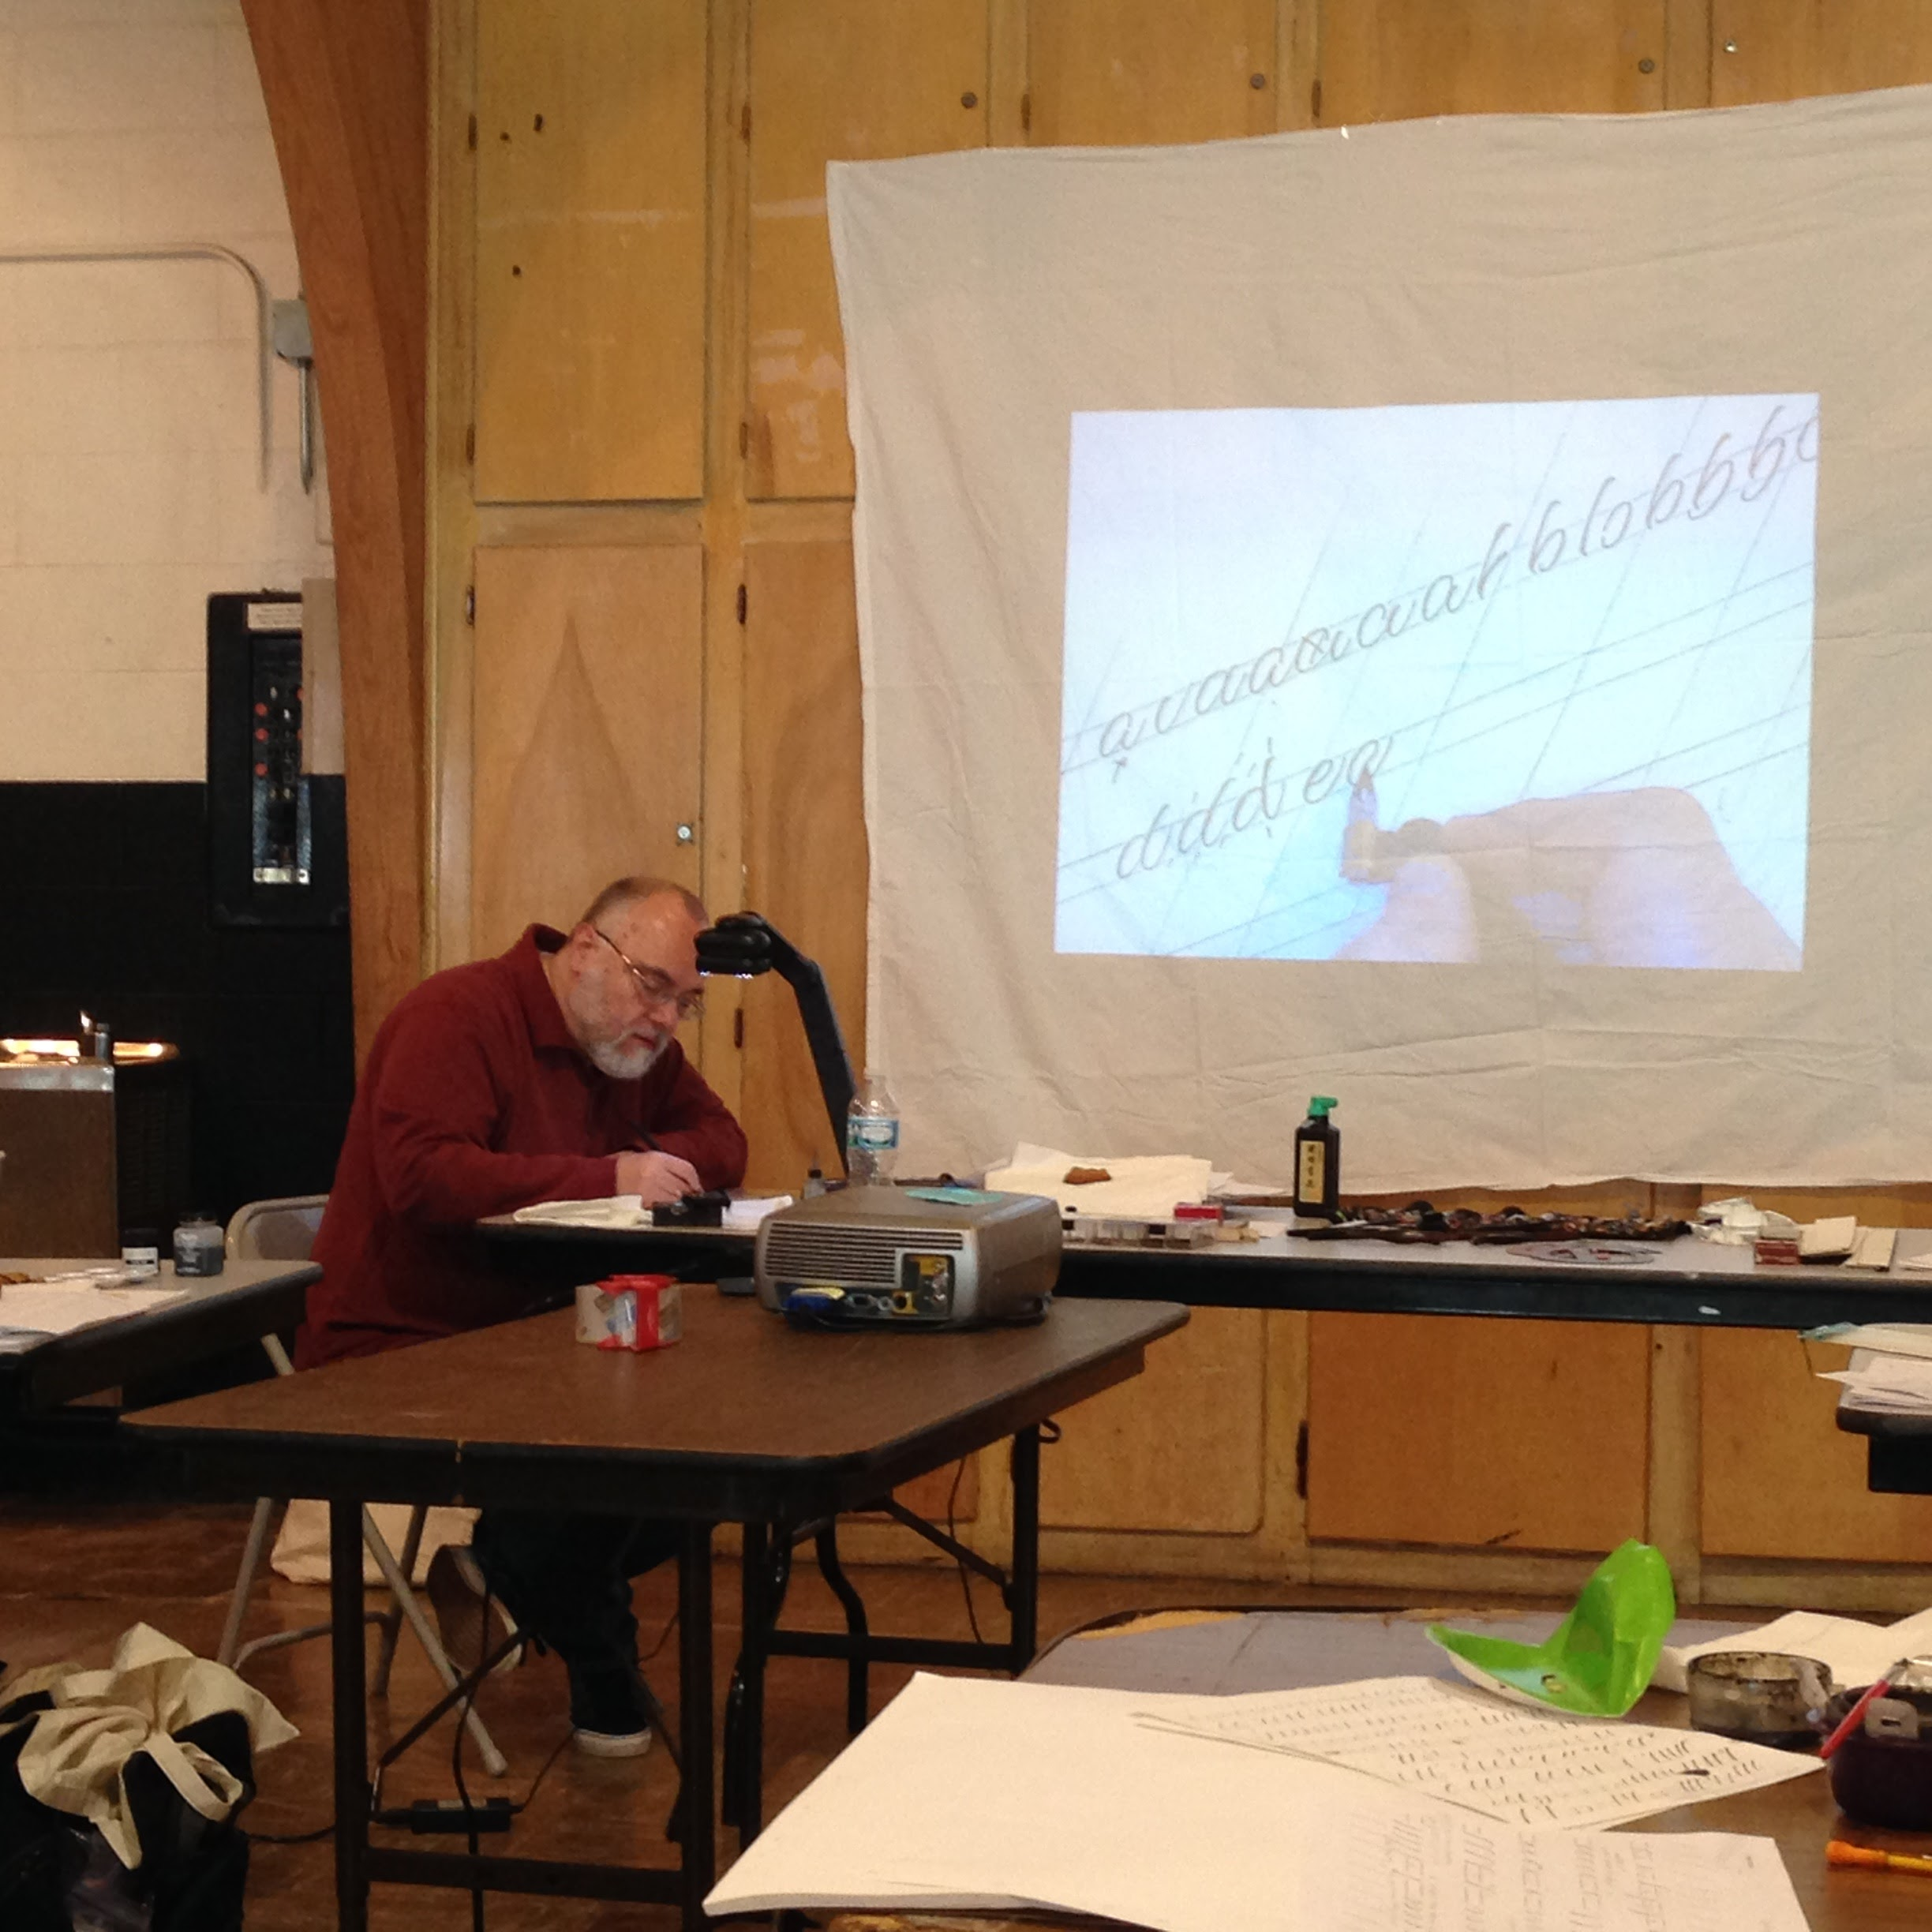 Mike Kecseg demonstrating lettering techniques with a projector